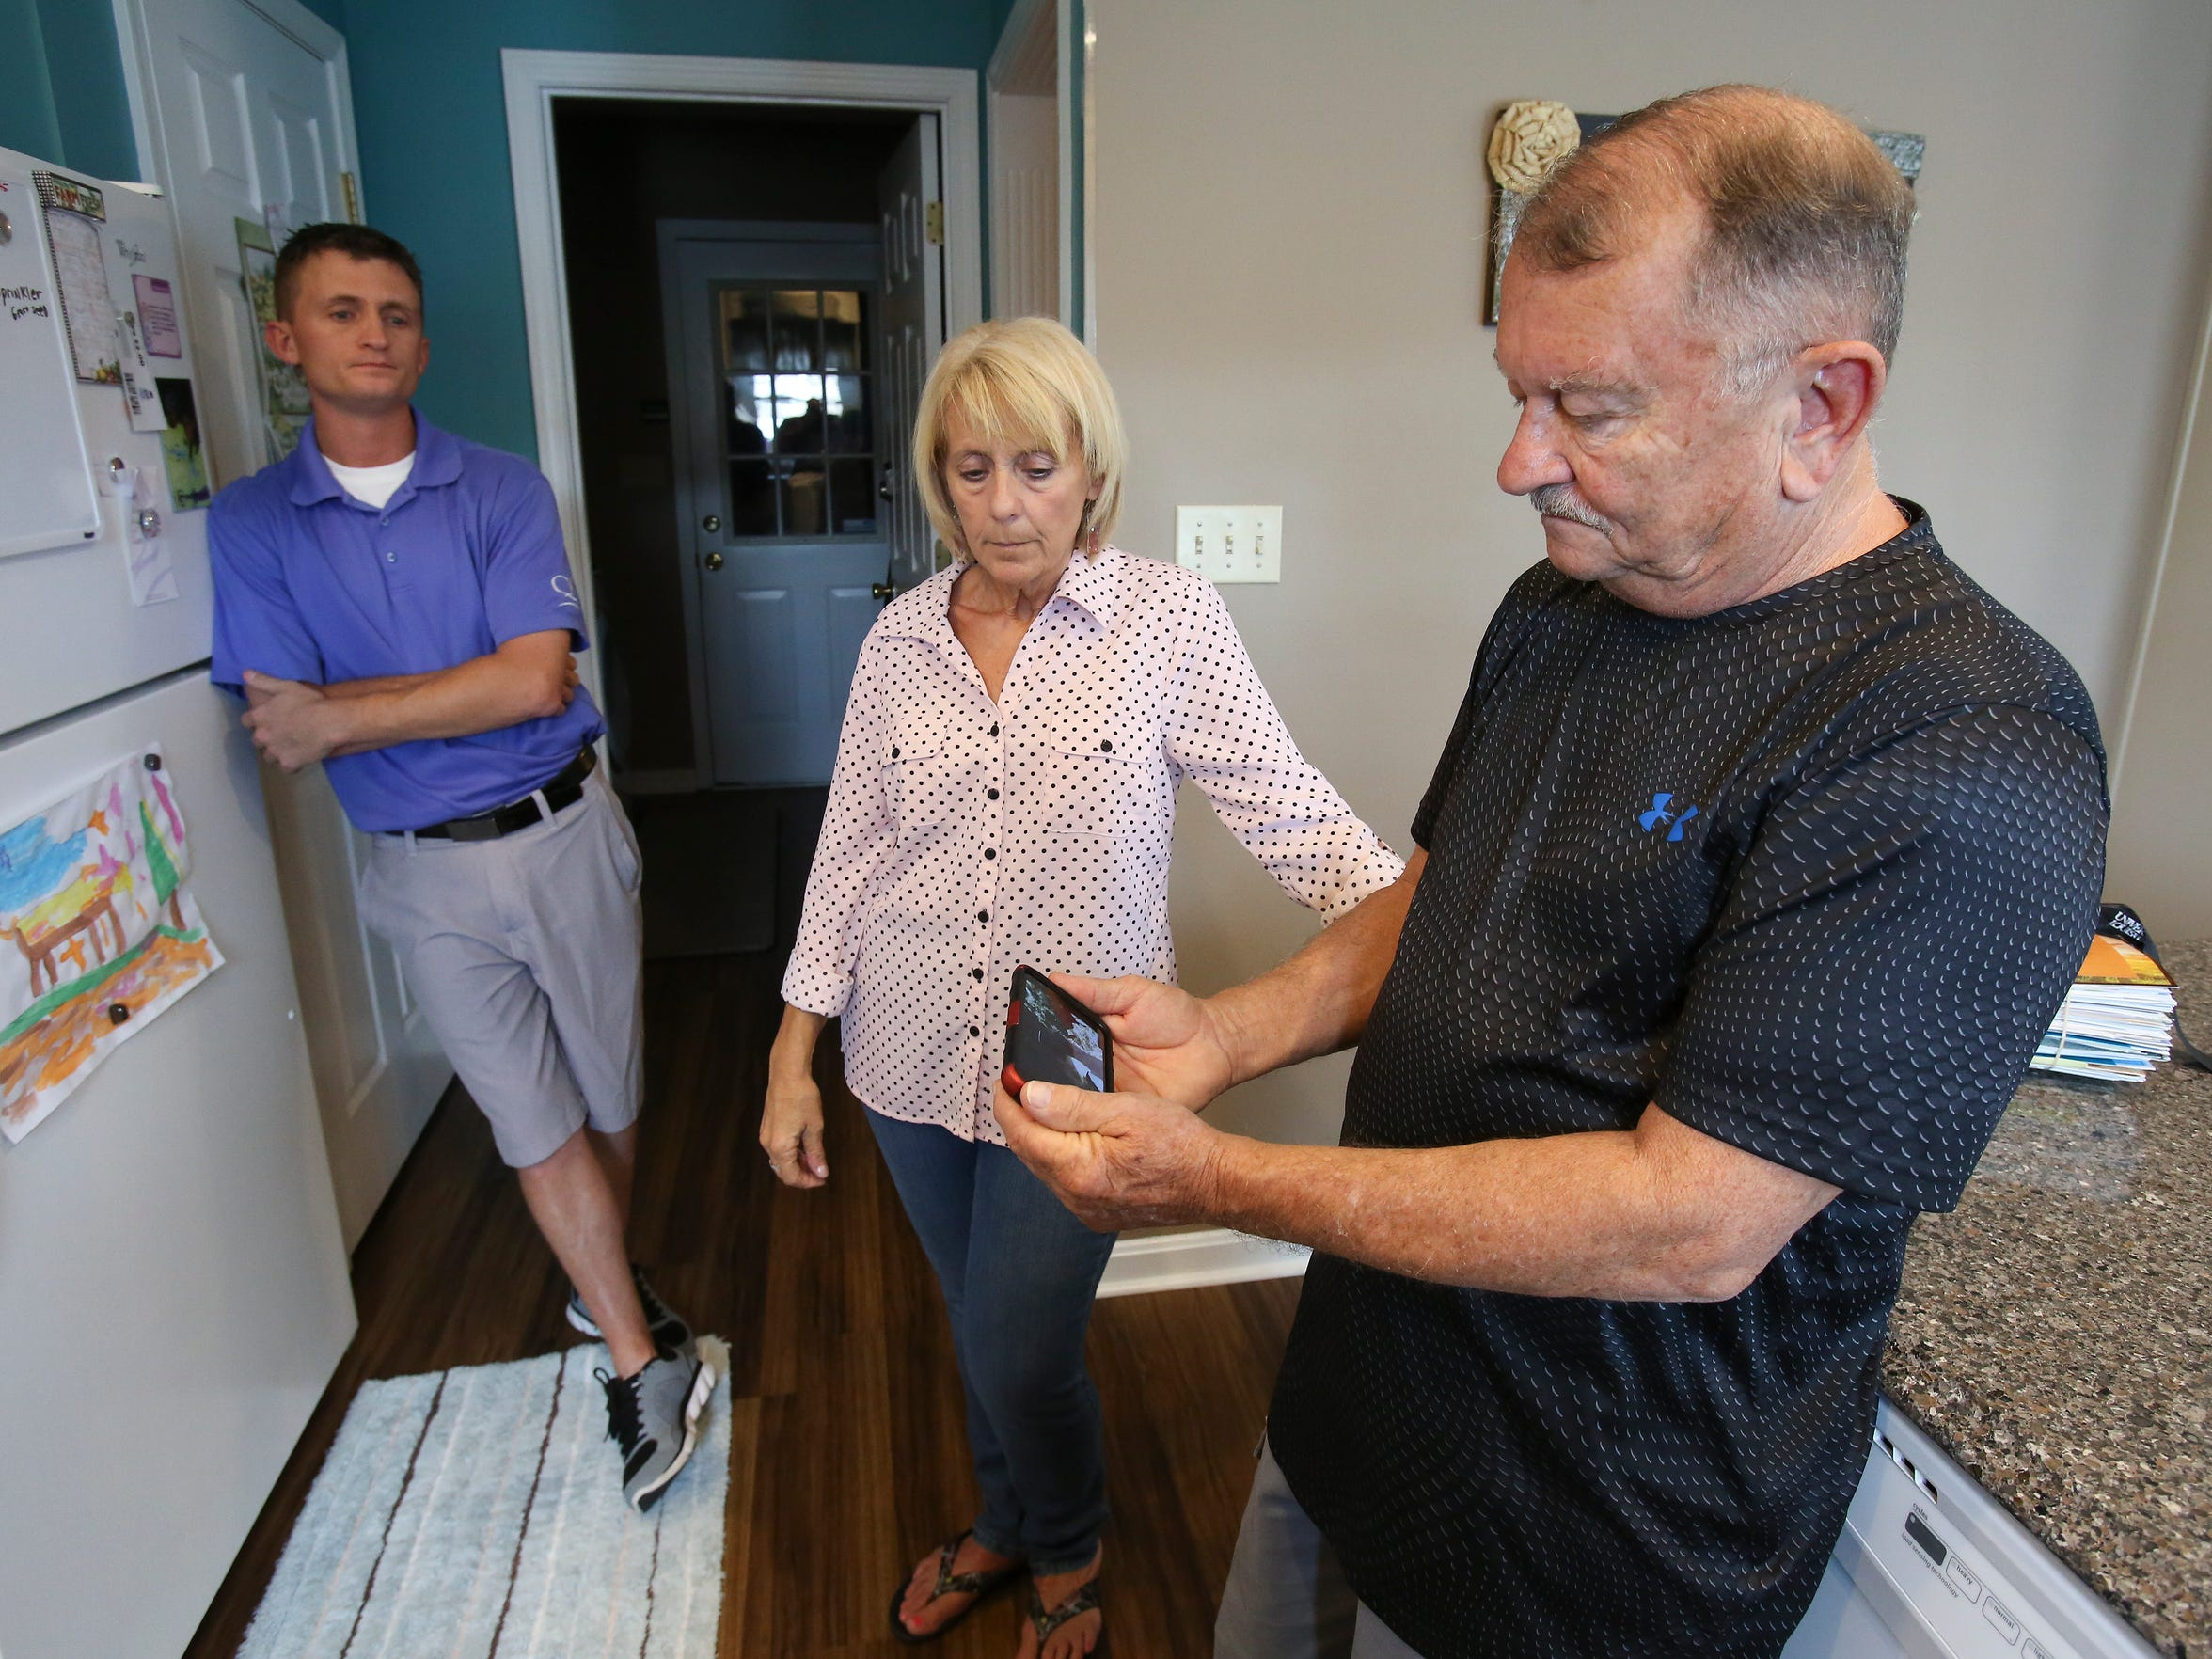 Karl Cooley, right, searches for audio recordings on his smartphone as his wife Brenda Cooley and son Aaron Cooley, 33, left, look on.  They were looking for recordings of their son Adam Cooley who died of a drug overdose. 